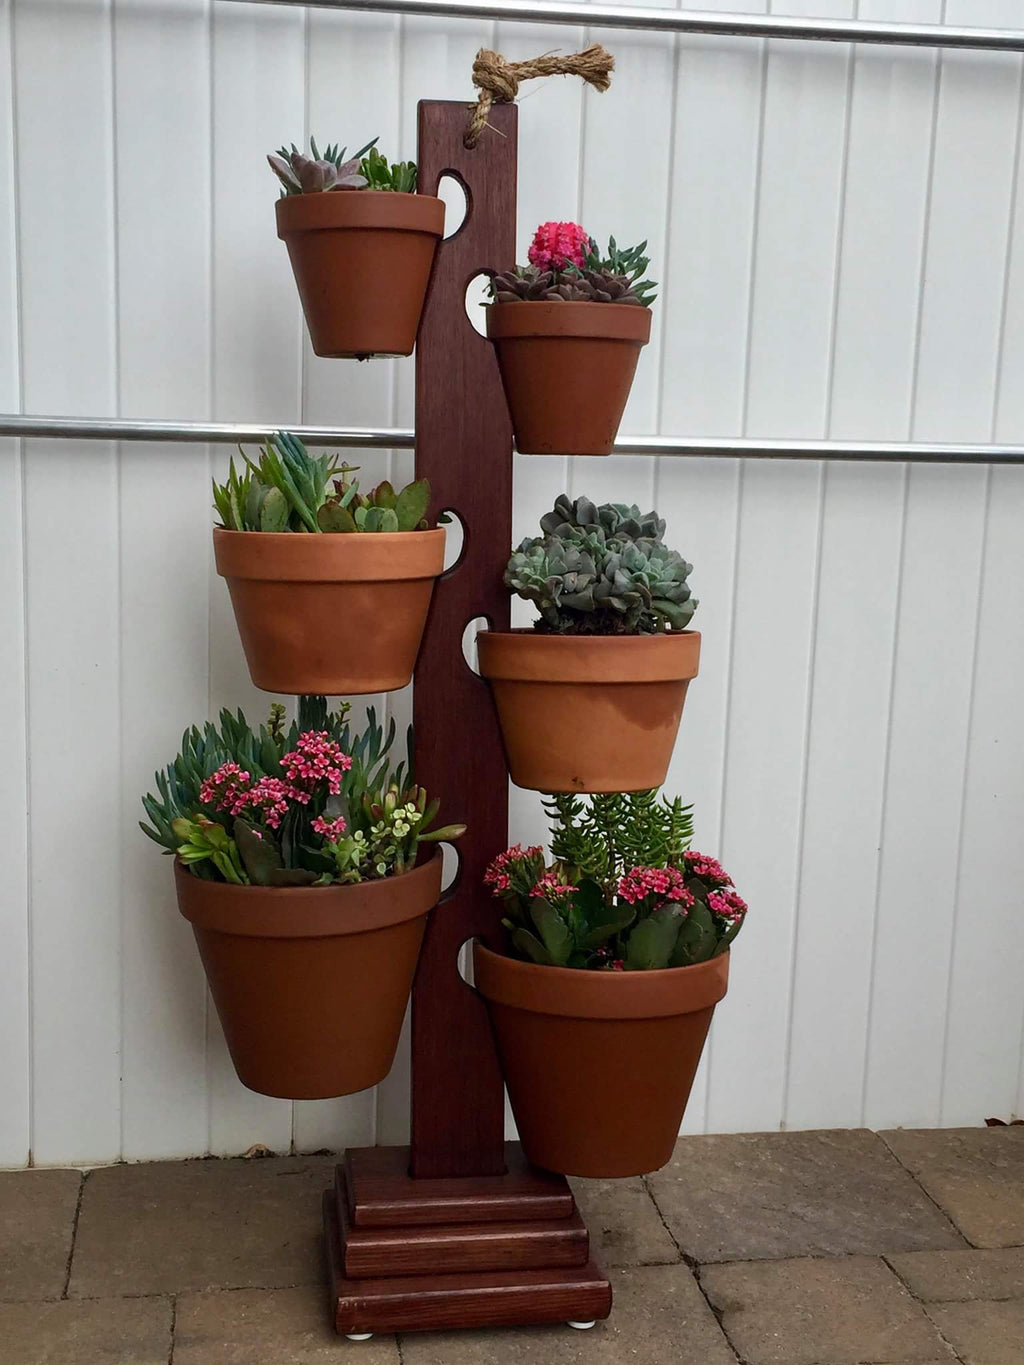 6 Pot Mahogany Tower from Long Beach Ca. Beautifully displayed with succulents